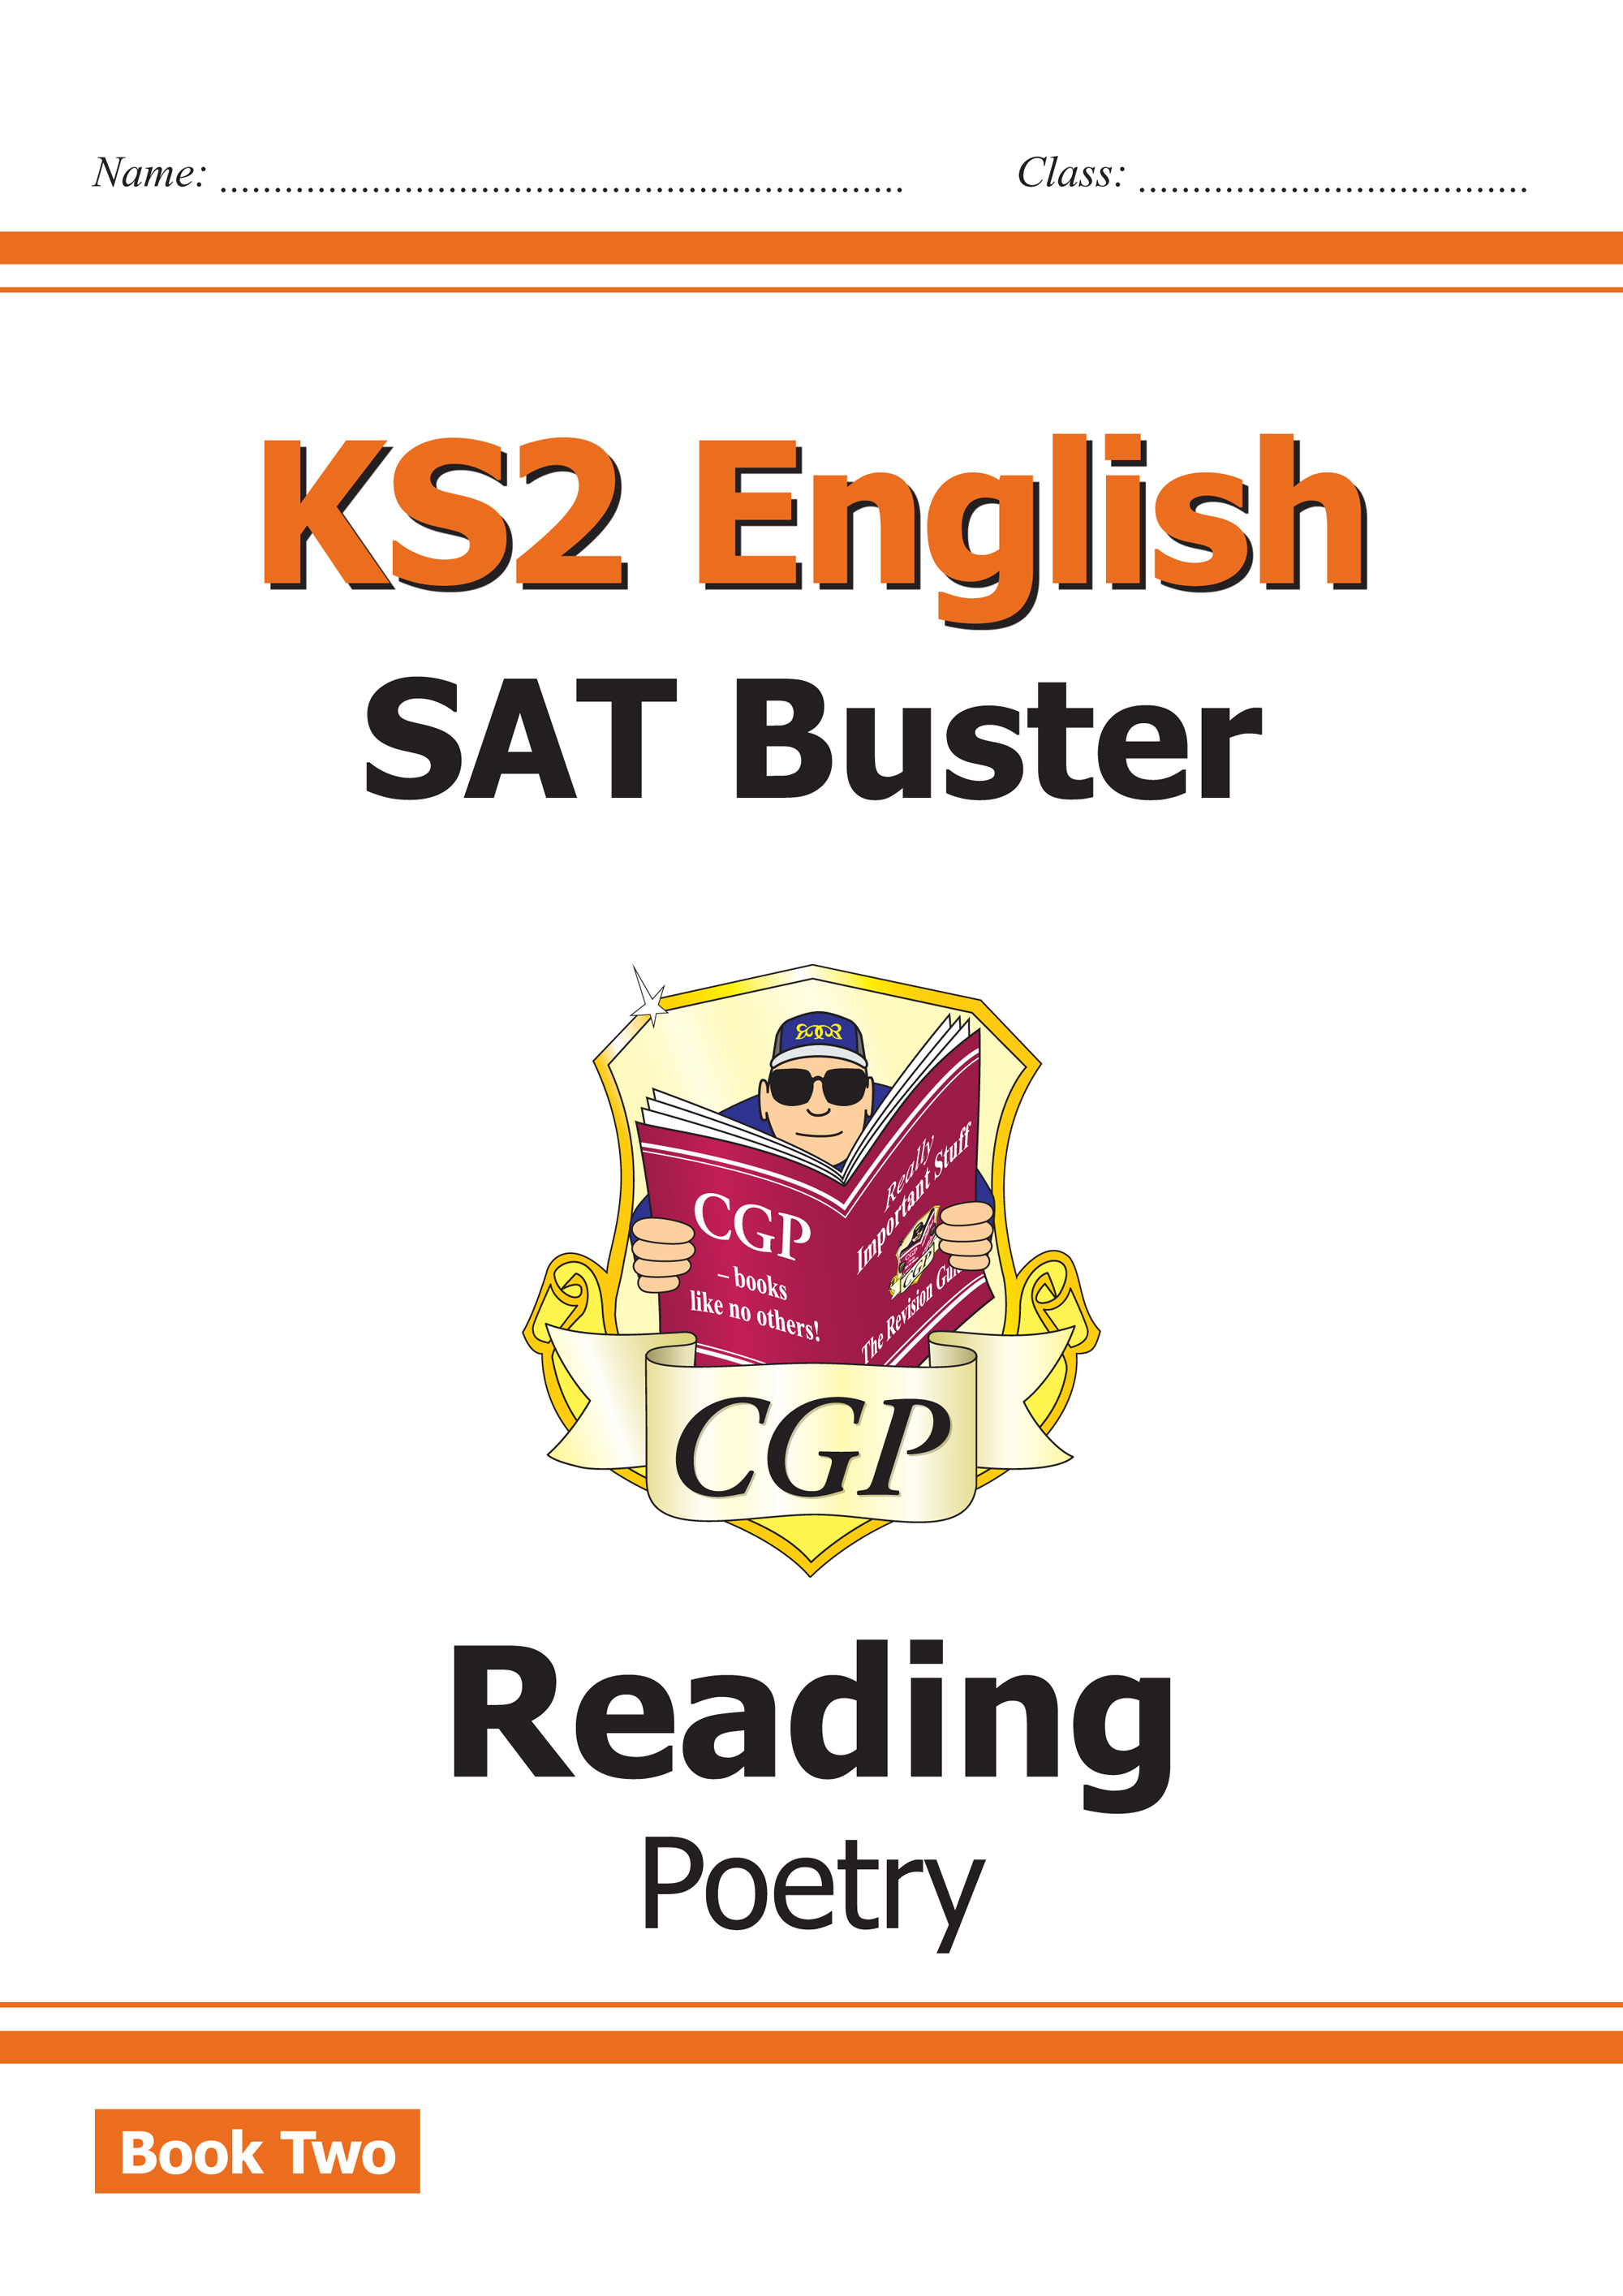 E6FRP221 - New KS2 English Reading SAT Buster: Poetry Book 2 (for the 2019 tests)